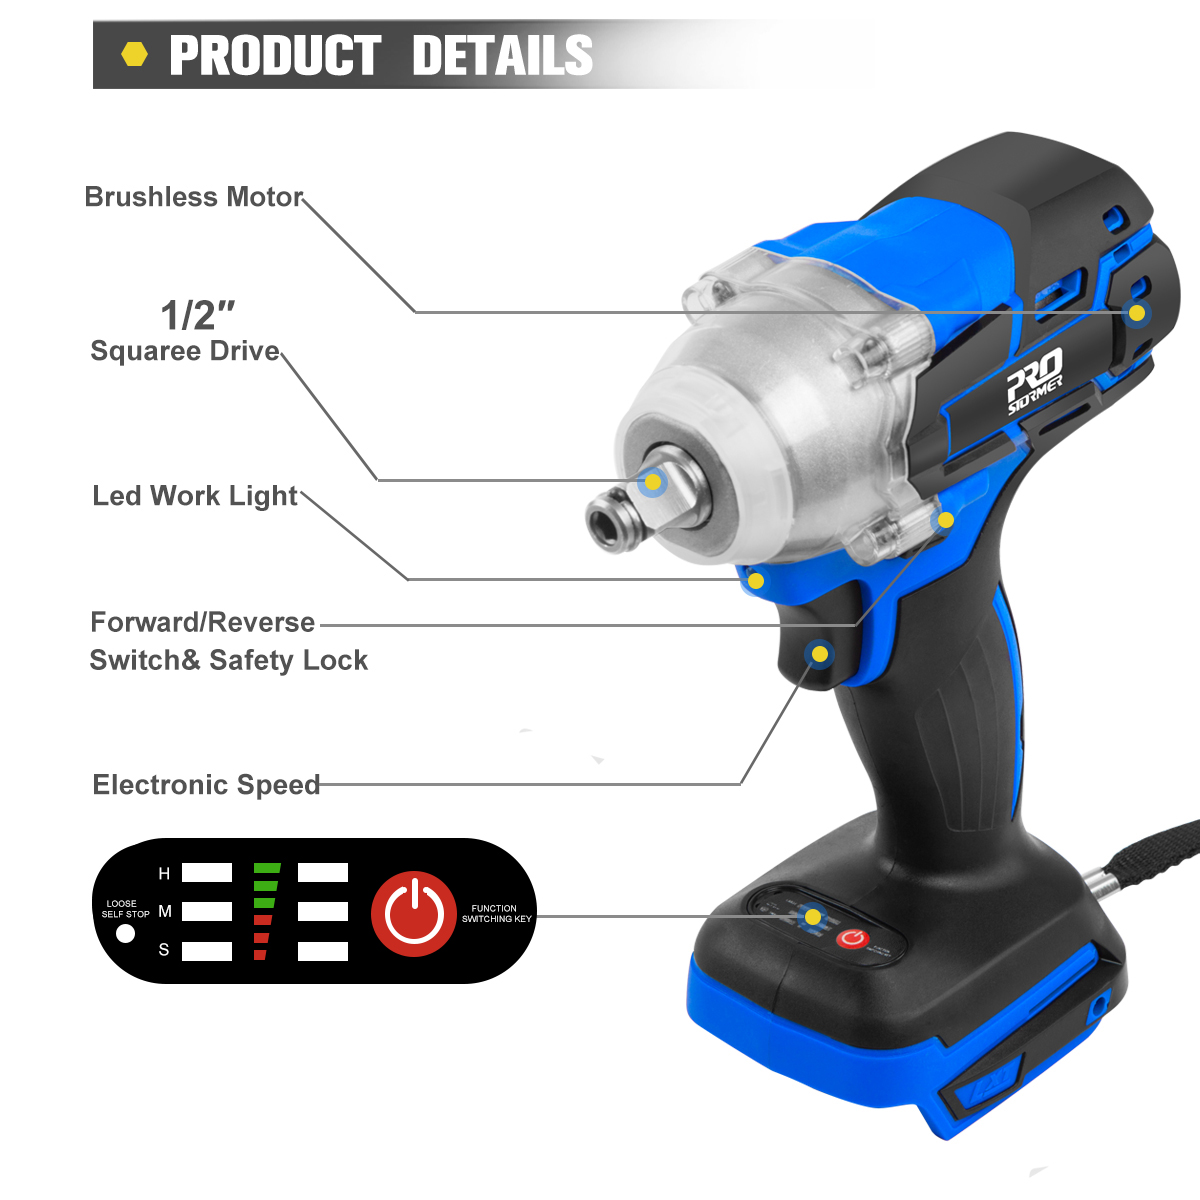 Tools : Electric Rechargeab Brushless Wrench Impact Cordless Electric Drill Screwdriver Without Lithium Battery 21V By PROSTORMER